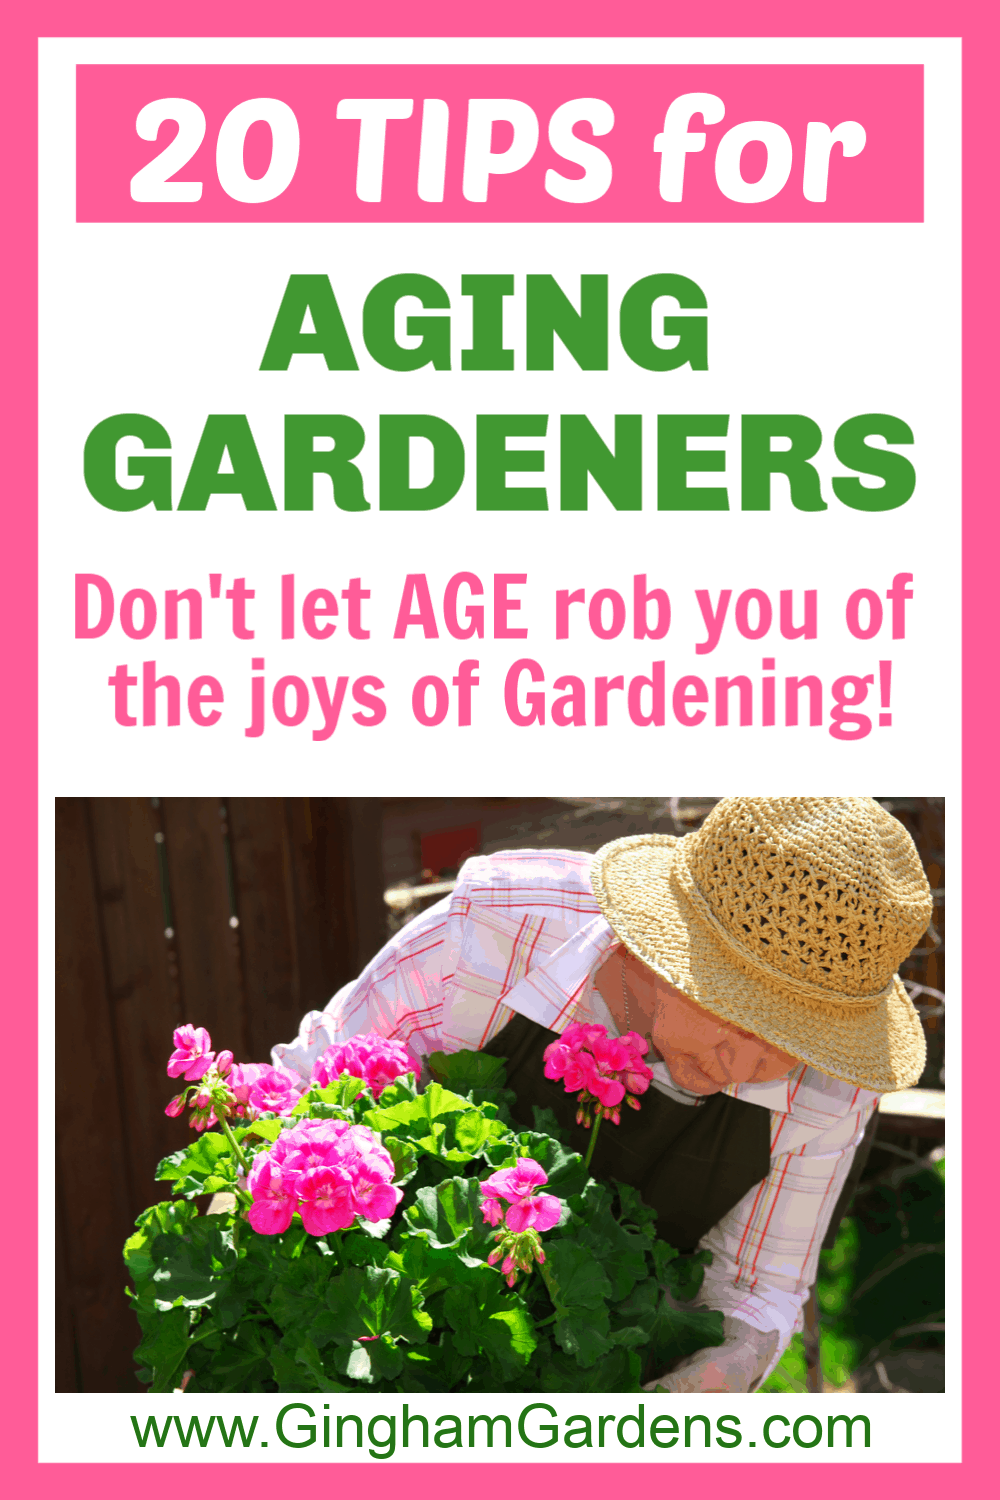 8b27726343f24fa1d5a6fe512139be8d - Benefits Of Gardening For The Elderly